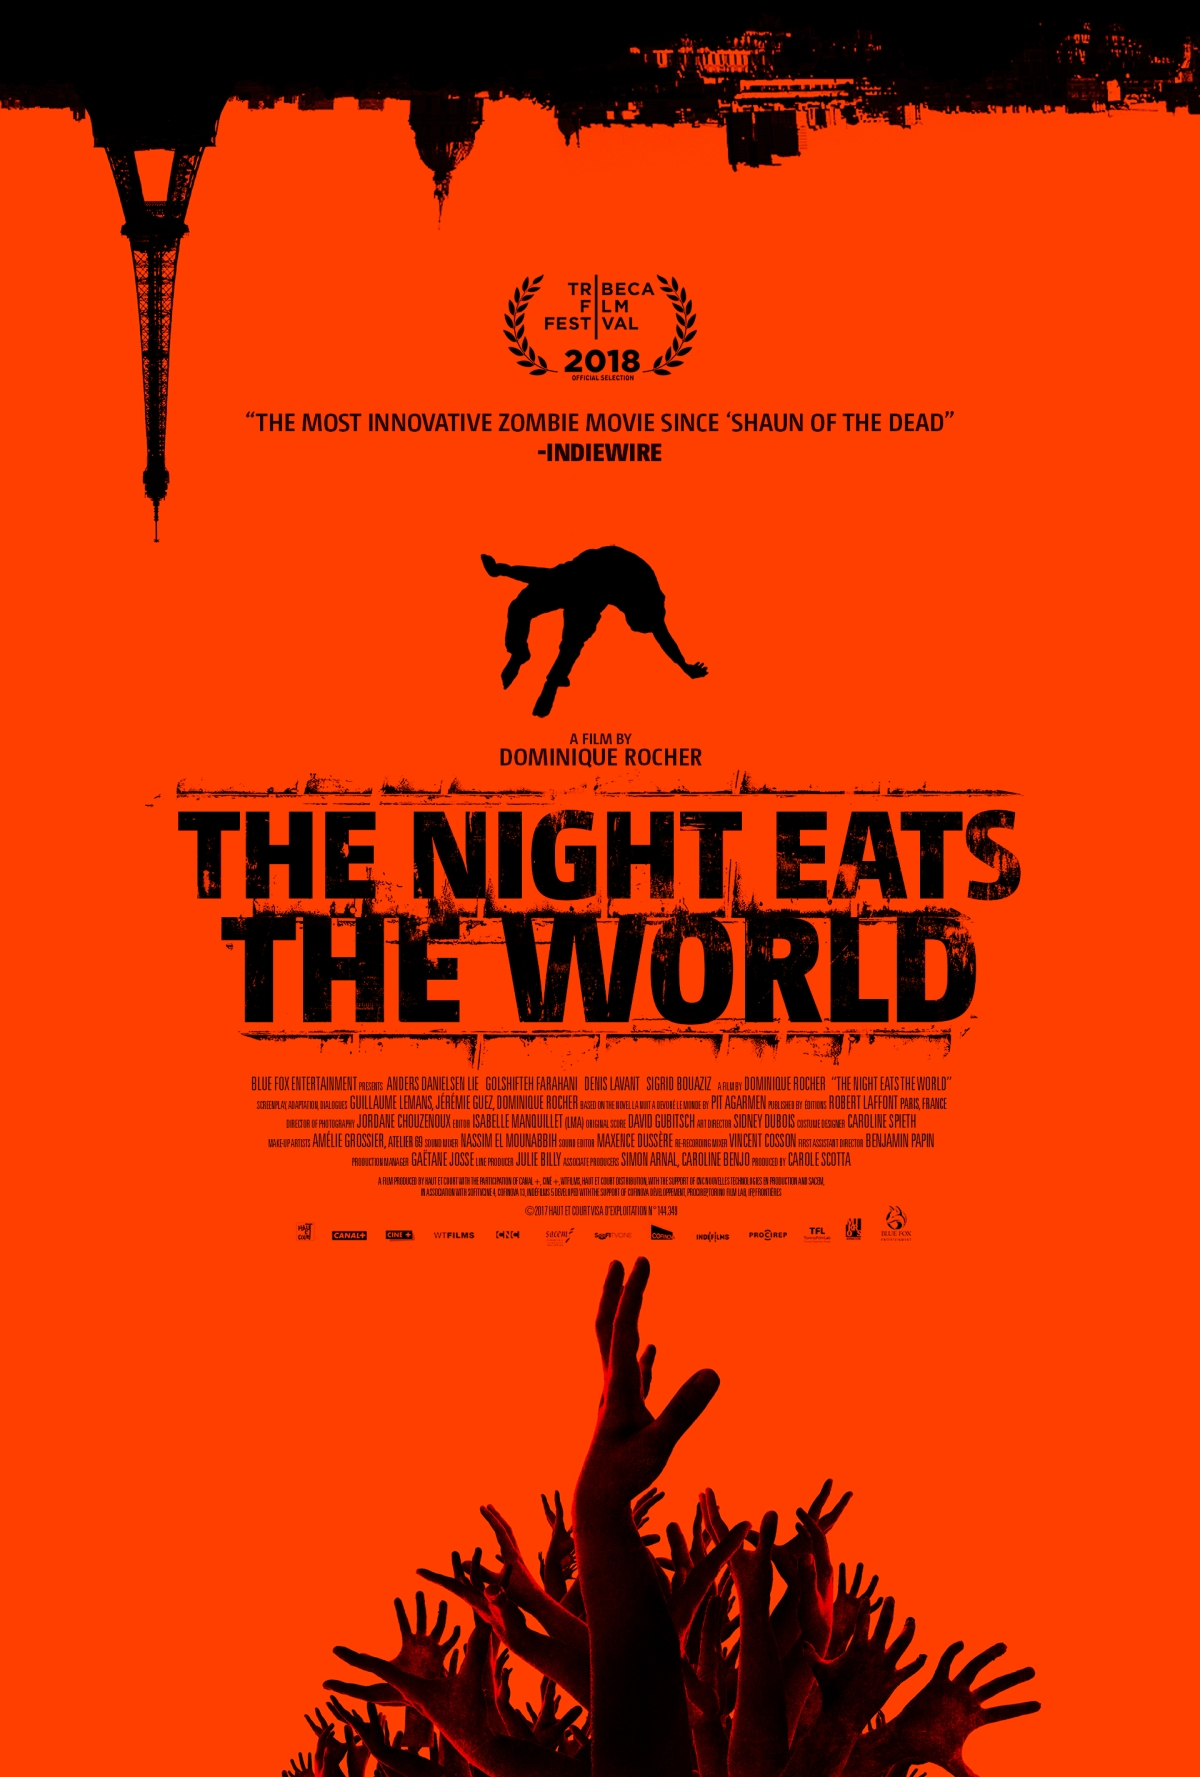 The Night Eats The World (2018, dir. Dominique Rocher)